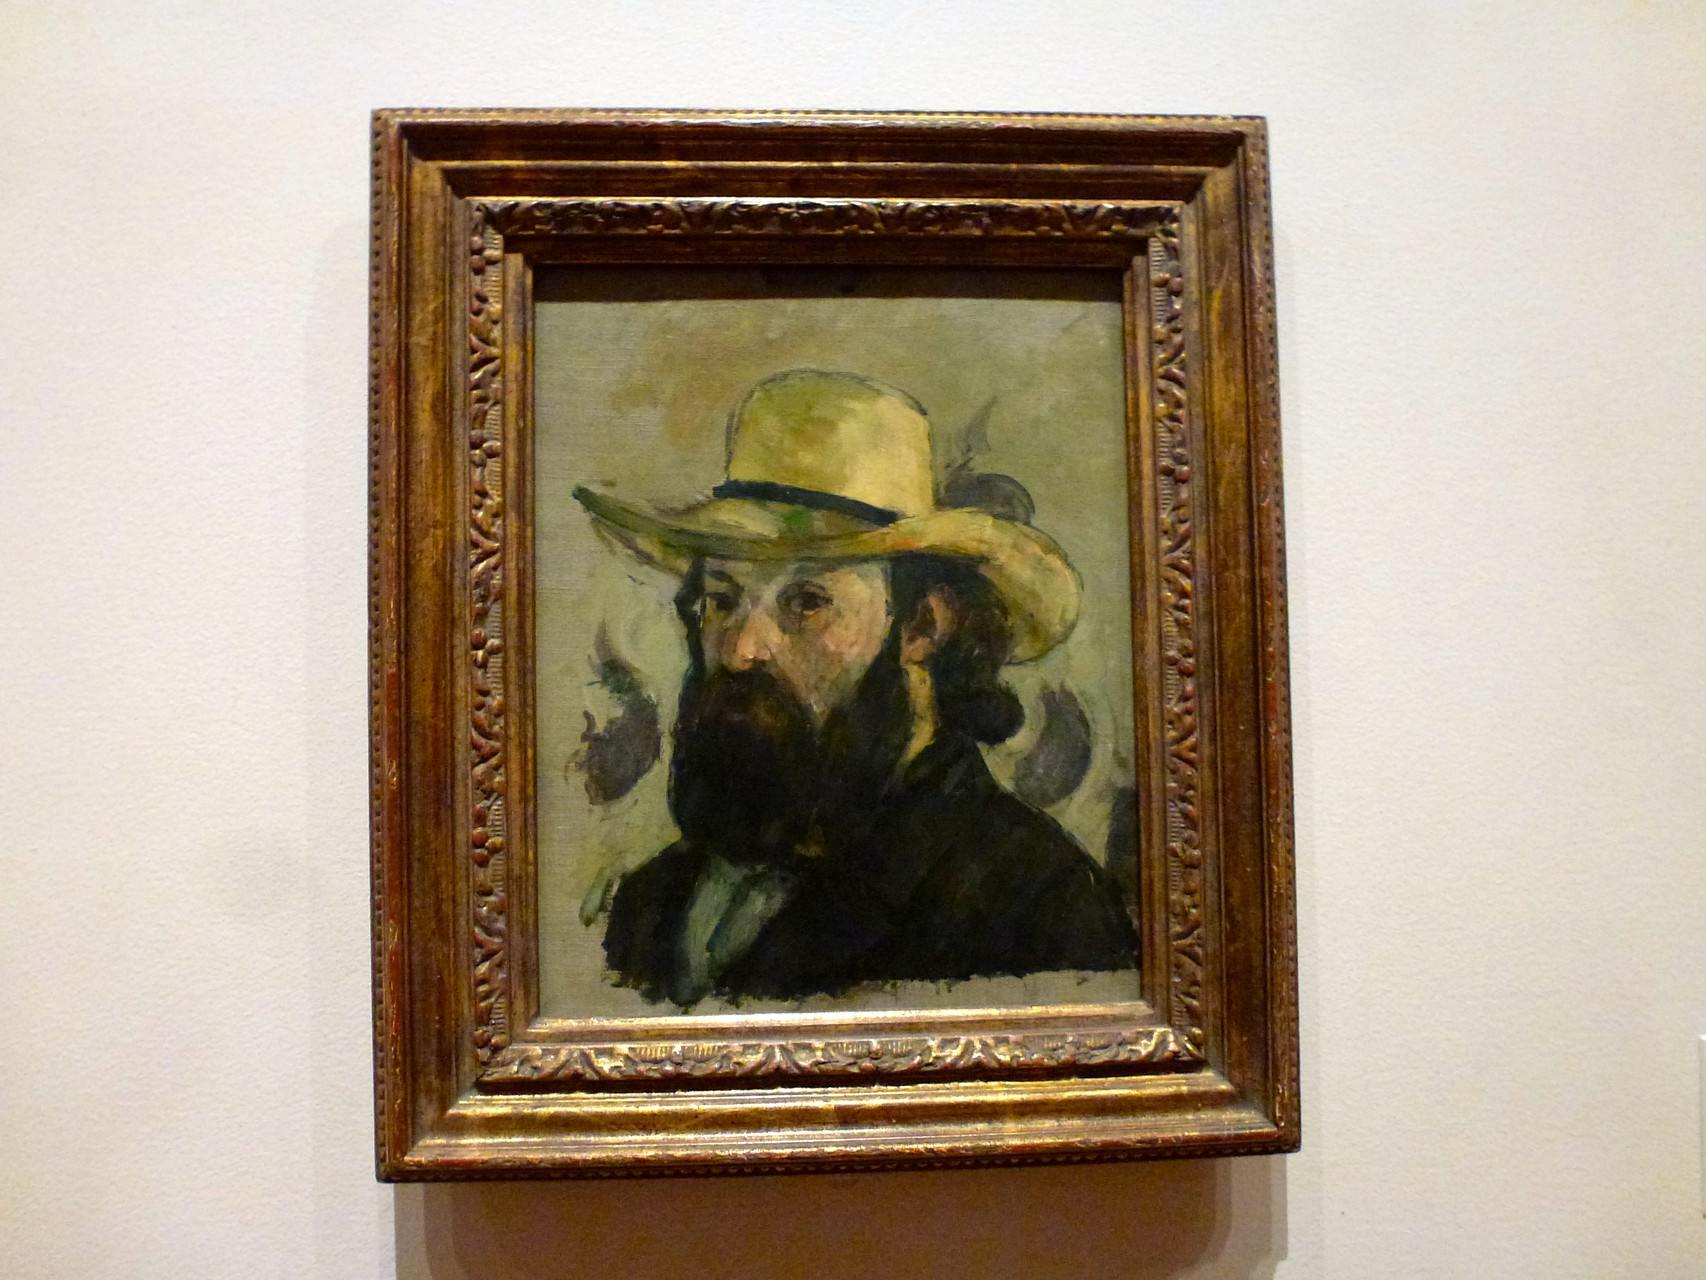 Paul Cézanne - Self-Portrait in a Straw Hat (1875/76)